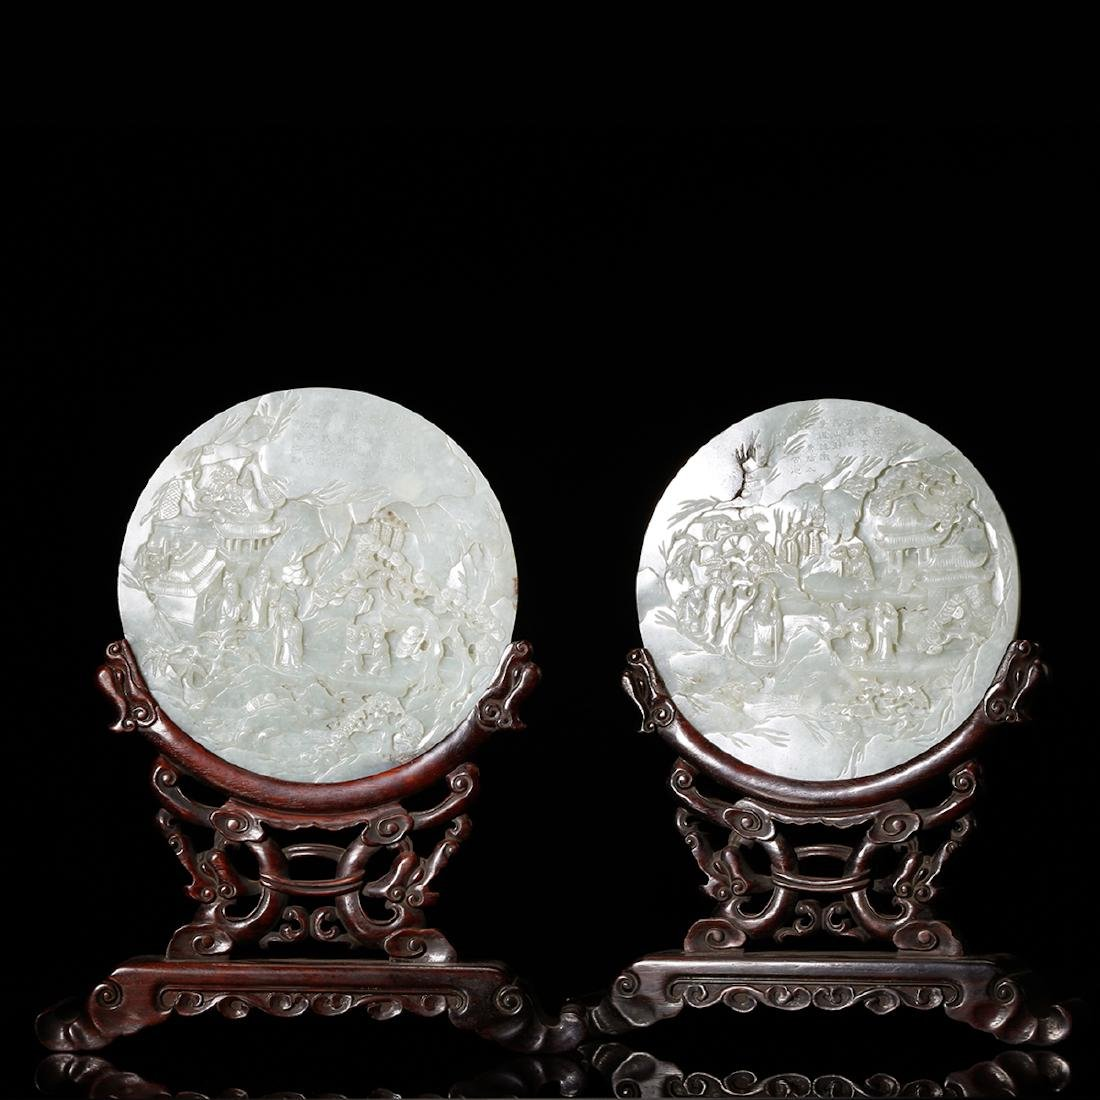 CHINESE PAIR OF QING DY. WHITE JADE TABLE SCREENS